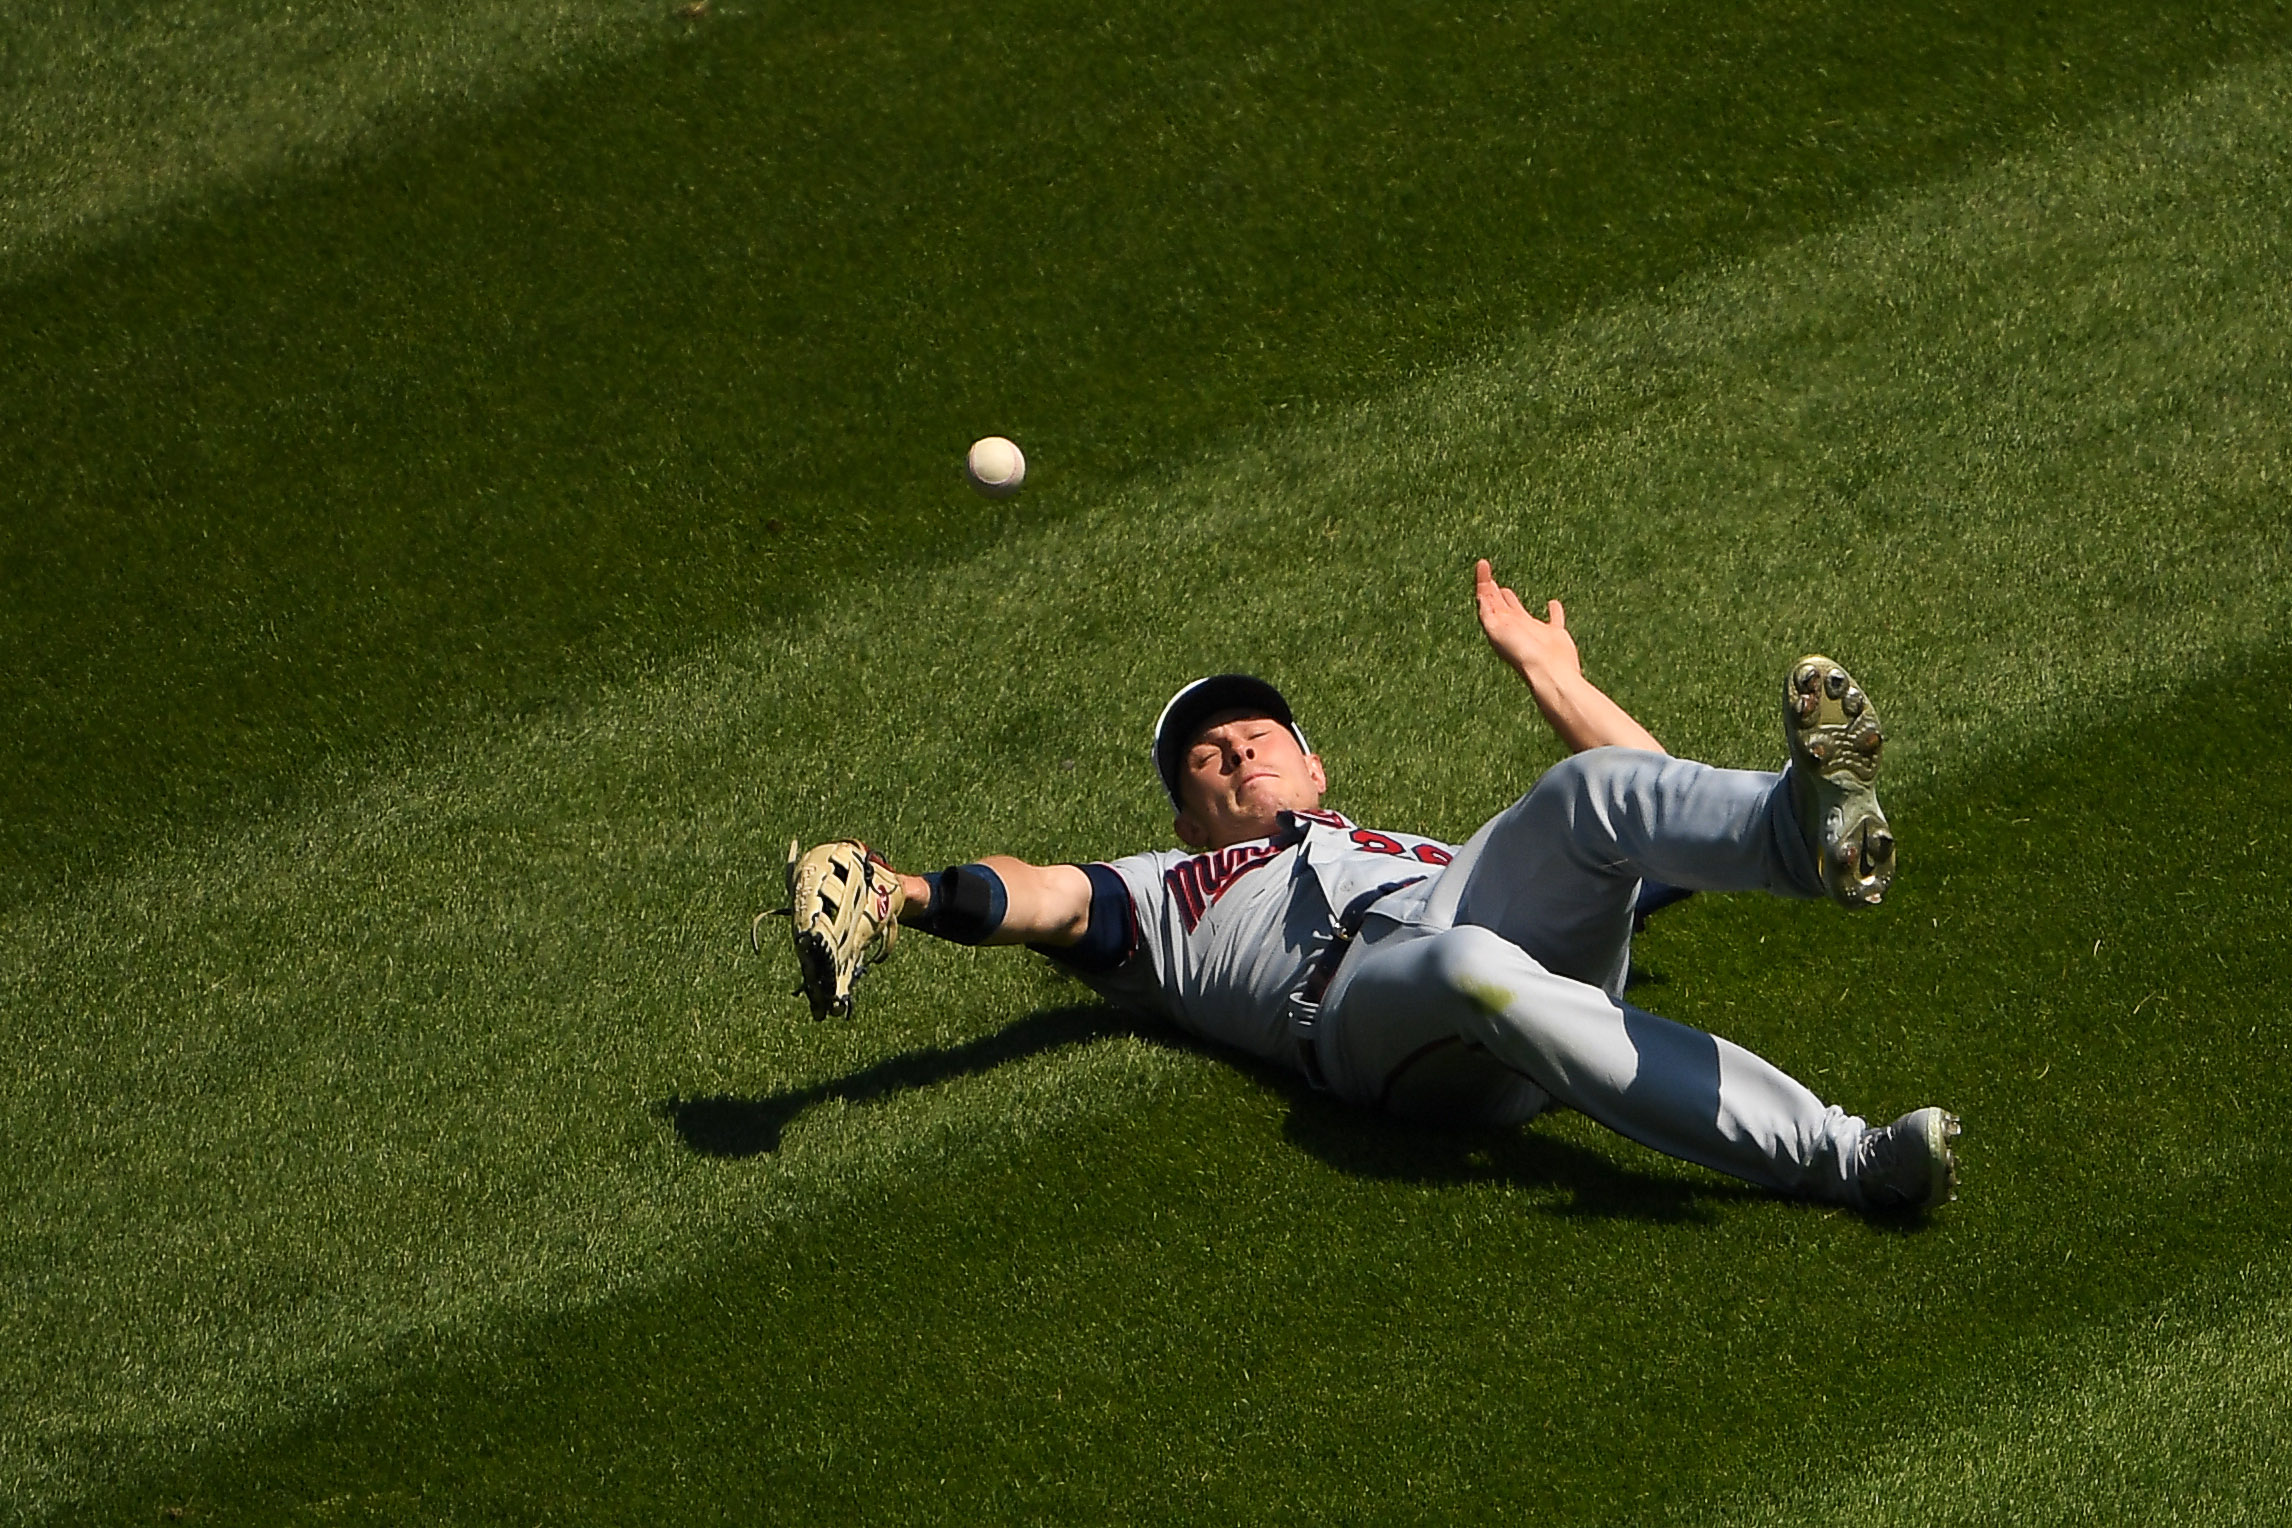 May 13, 2021; Chicago, Illinois, USA; Minnesota Twins center fielder Max Kepler (26) canÕt make the catch in the third inning against the Chicago White Sox at Guaranteed Rate Field. / Quinn Harris-USA TODAY Sports